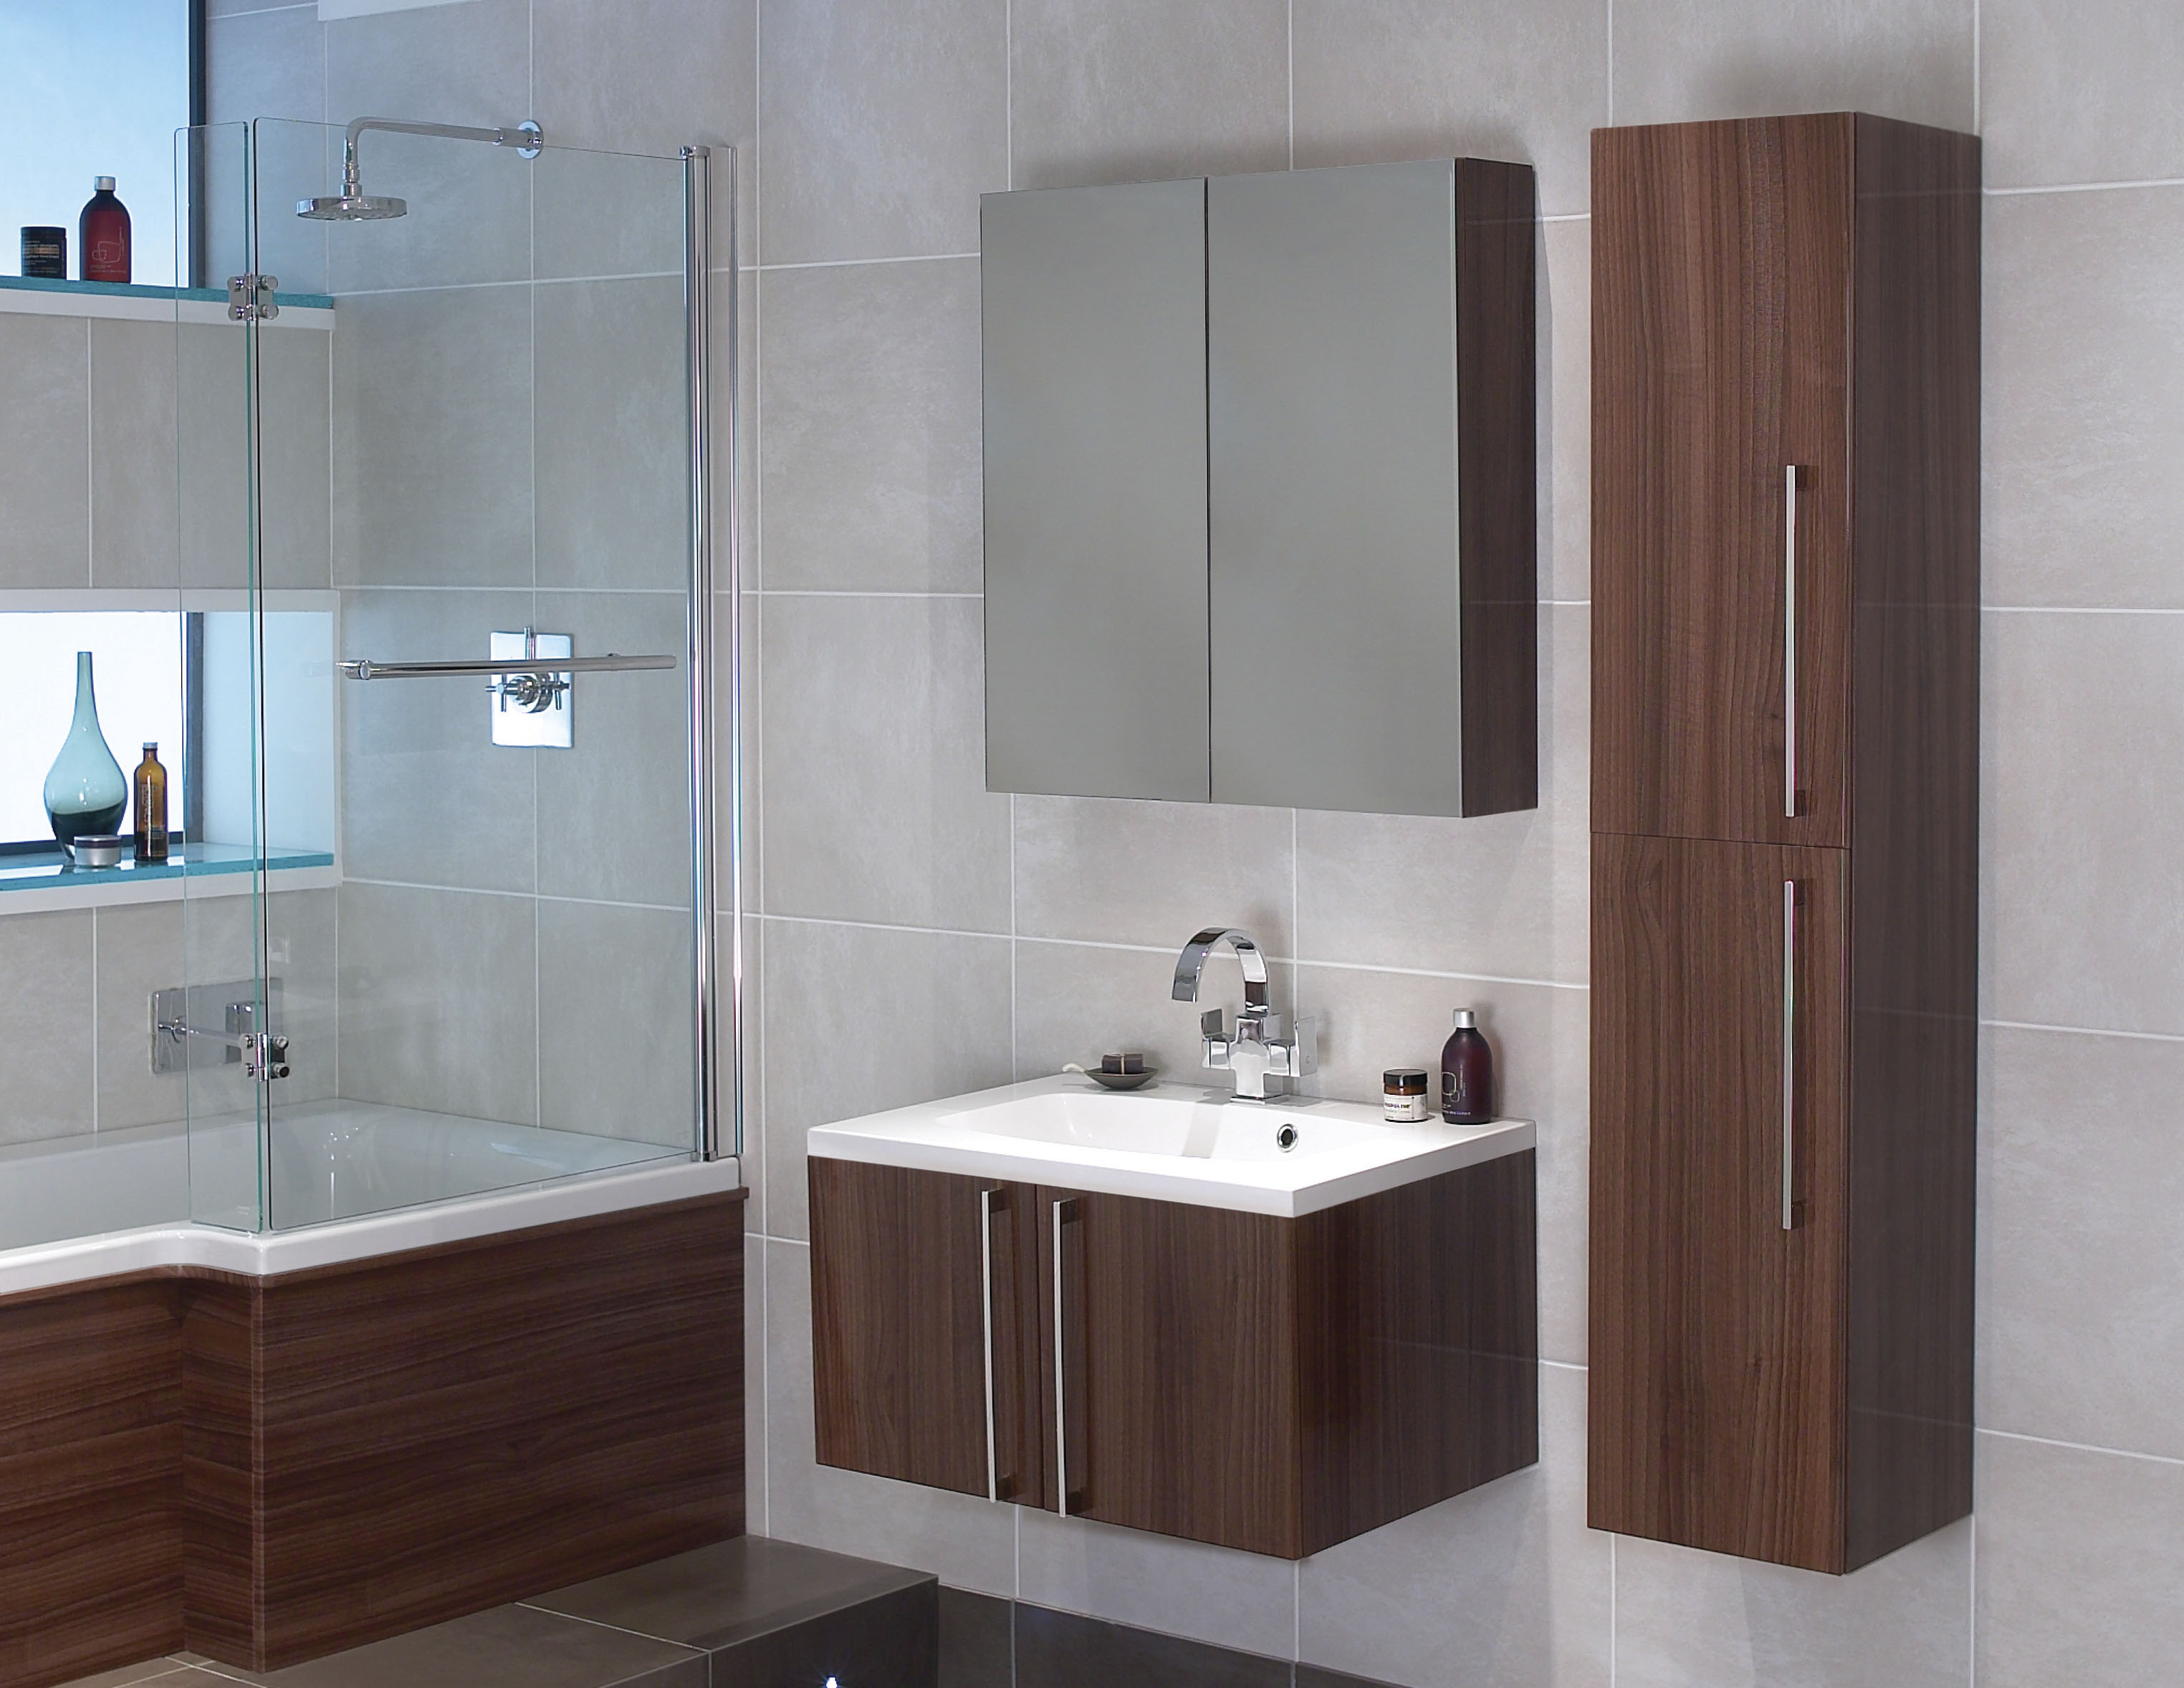 of trend sinks modern cabinet furniture mirrors ideas with bathroom image double and